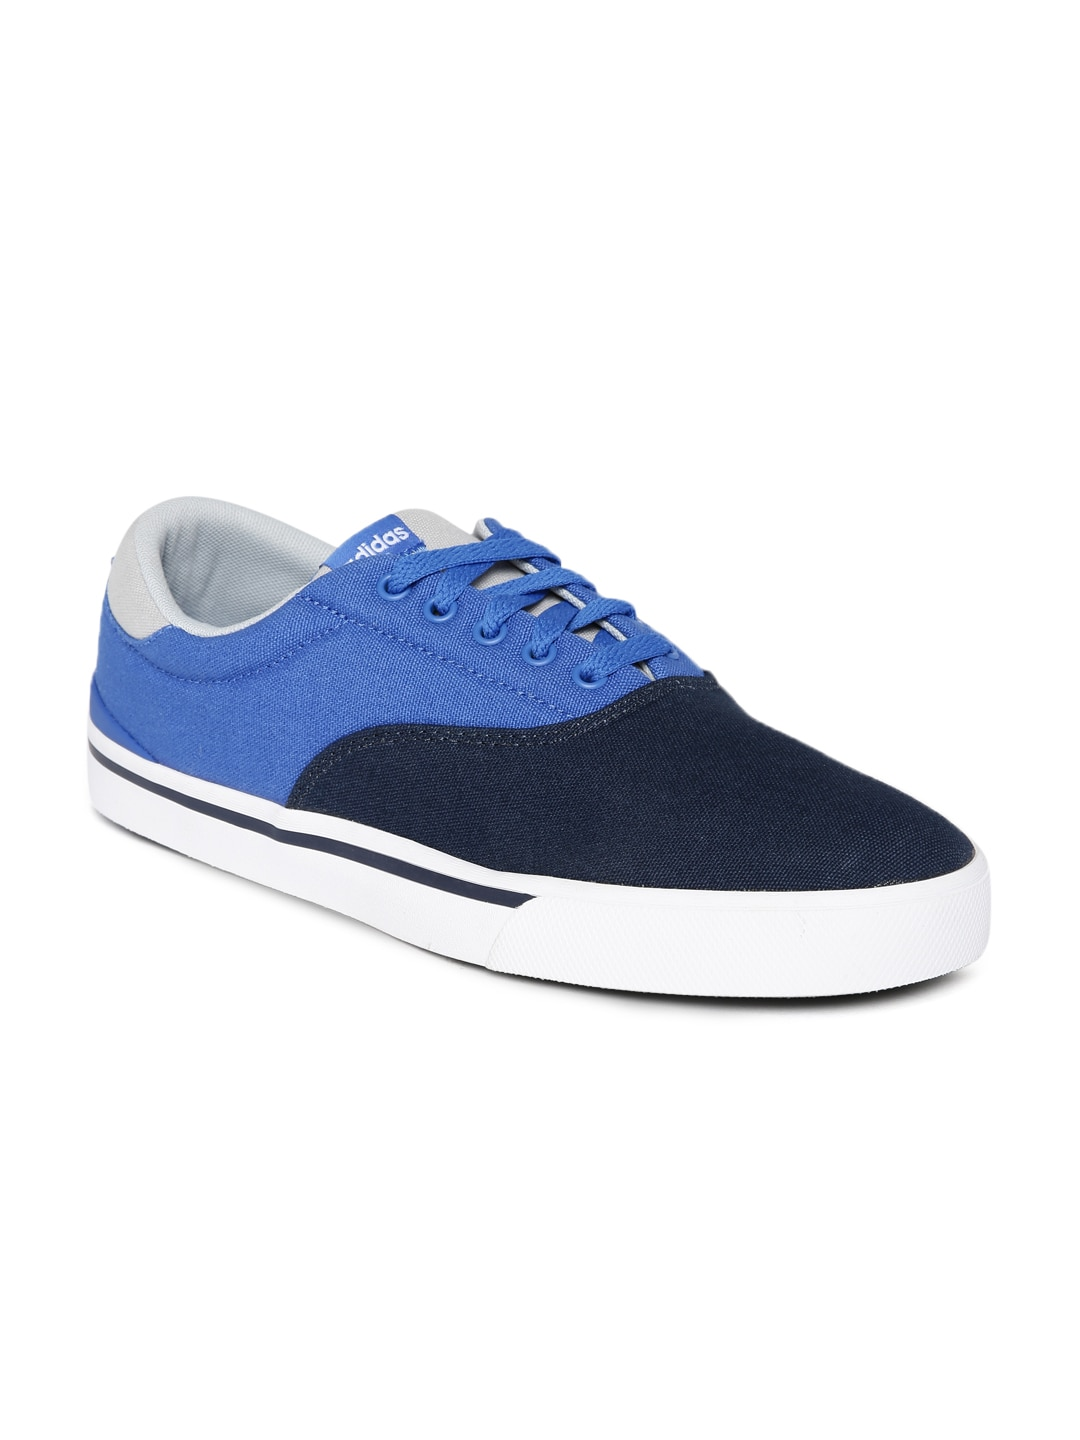 129f67a16a41 Adidas Neo Shoes - Buy Adidas Neo Shoes online in India